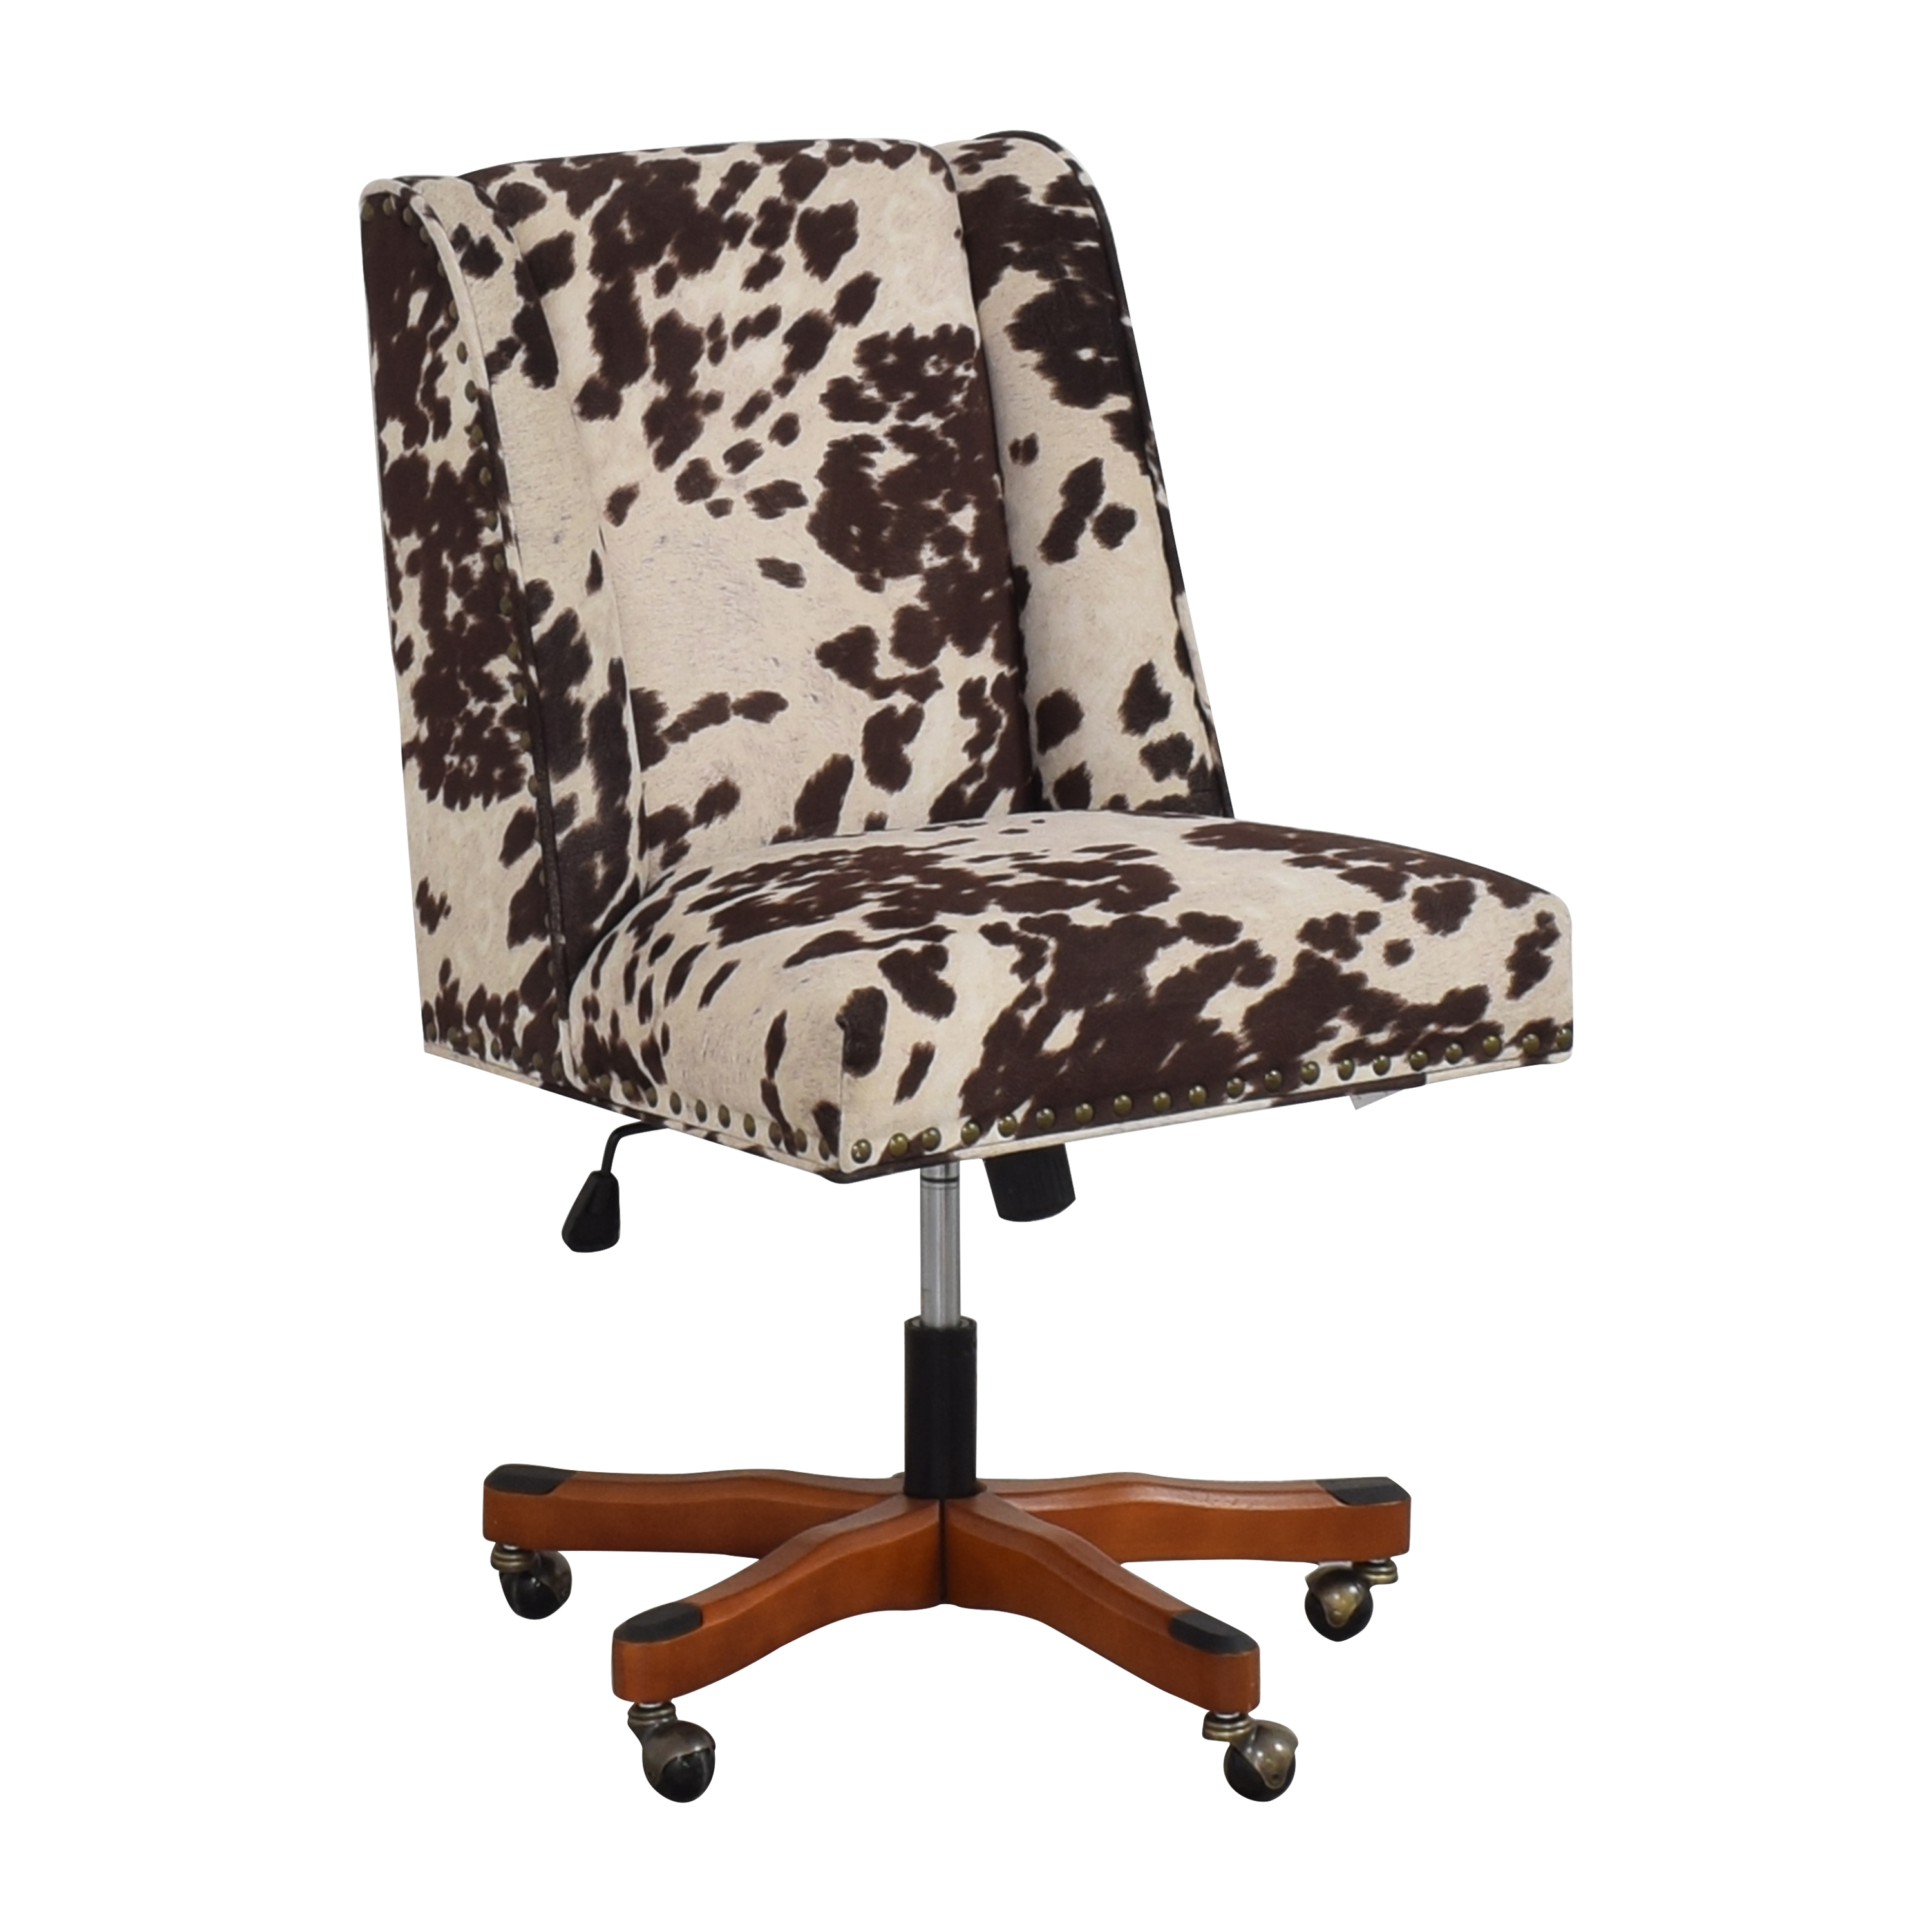 Linon Home Decor Linon Home Decor Wells Upholstered Swivel Office Chair used